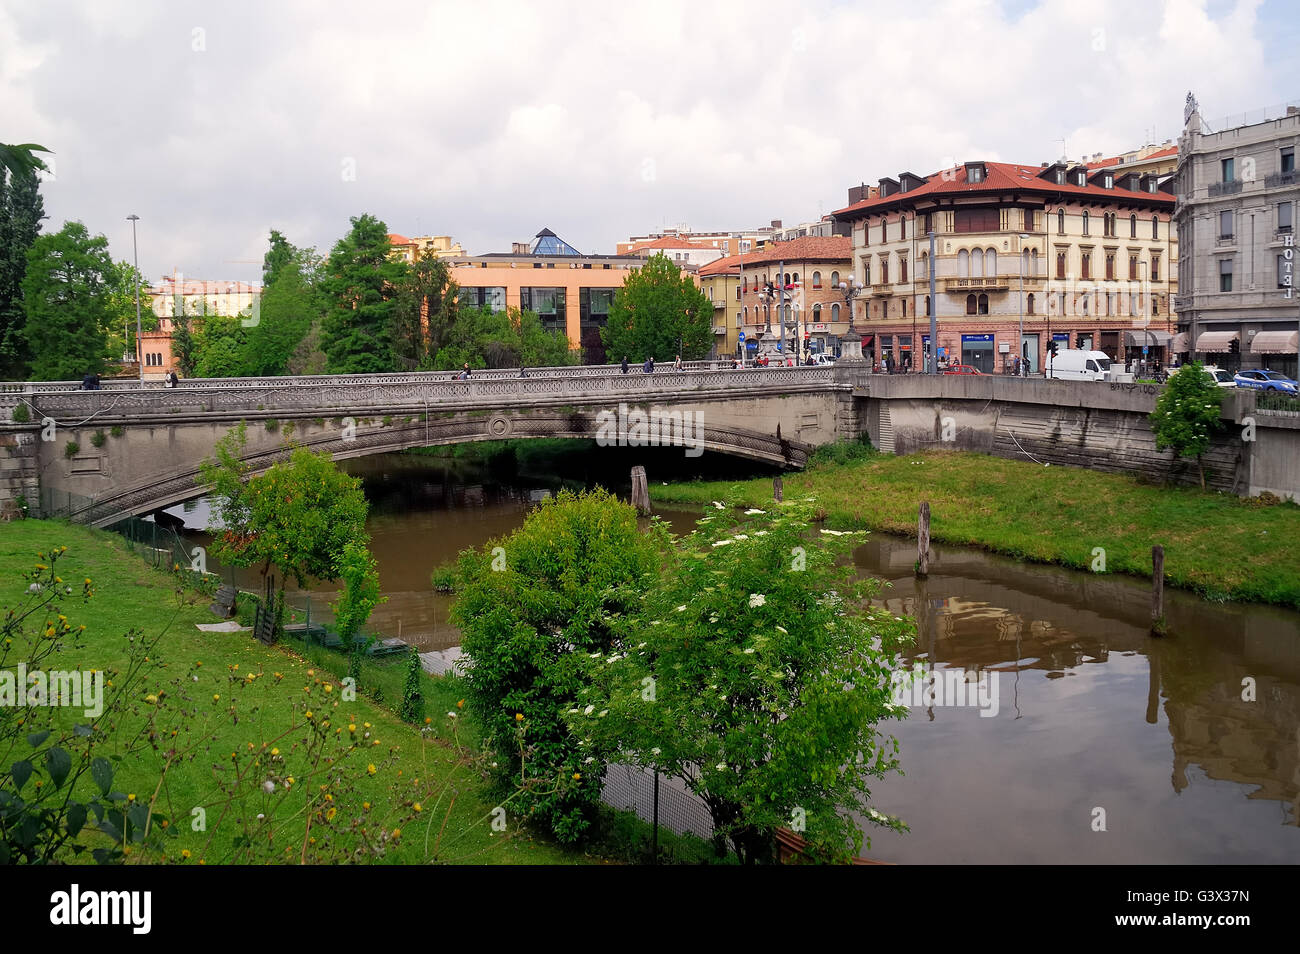 1227f7fa48 Padua, Italy. Corso Garibaldi street, the bridge on the Piovego river.